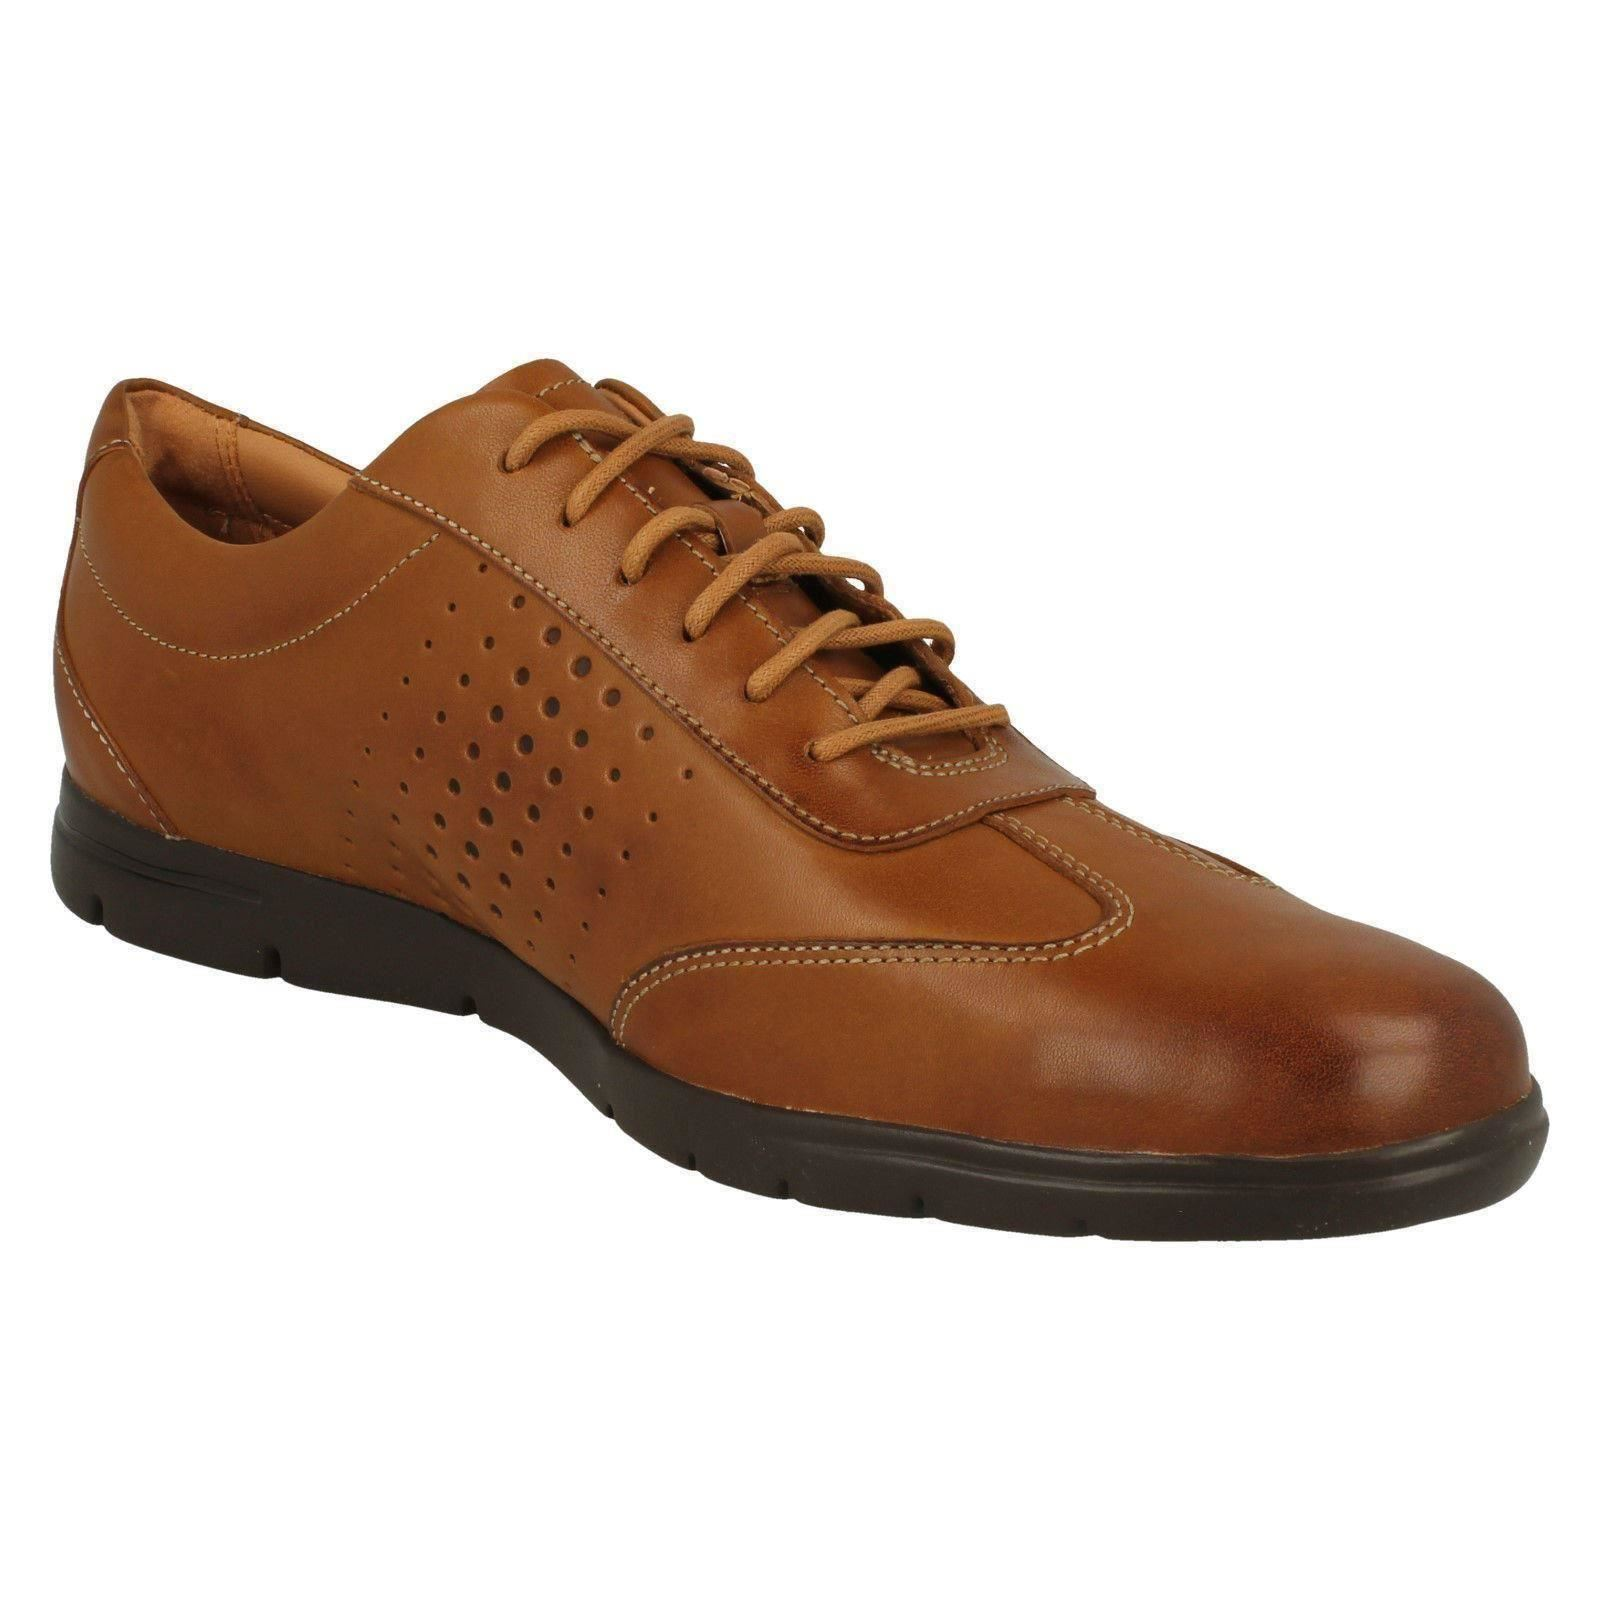 Hombres Clarks Casual Casual Casual Lightweight Lace Up zapatos Vennor Vibe 2ac42a